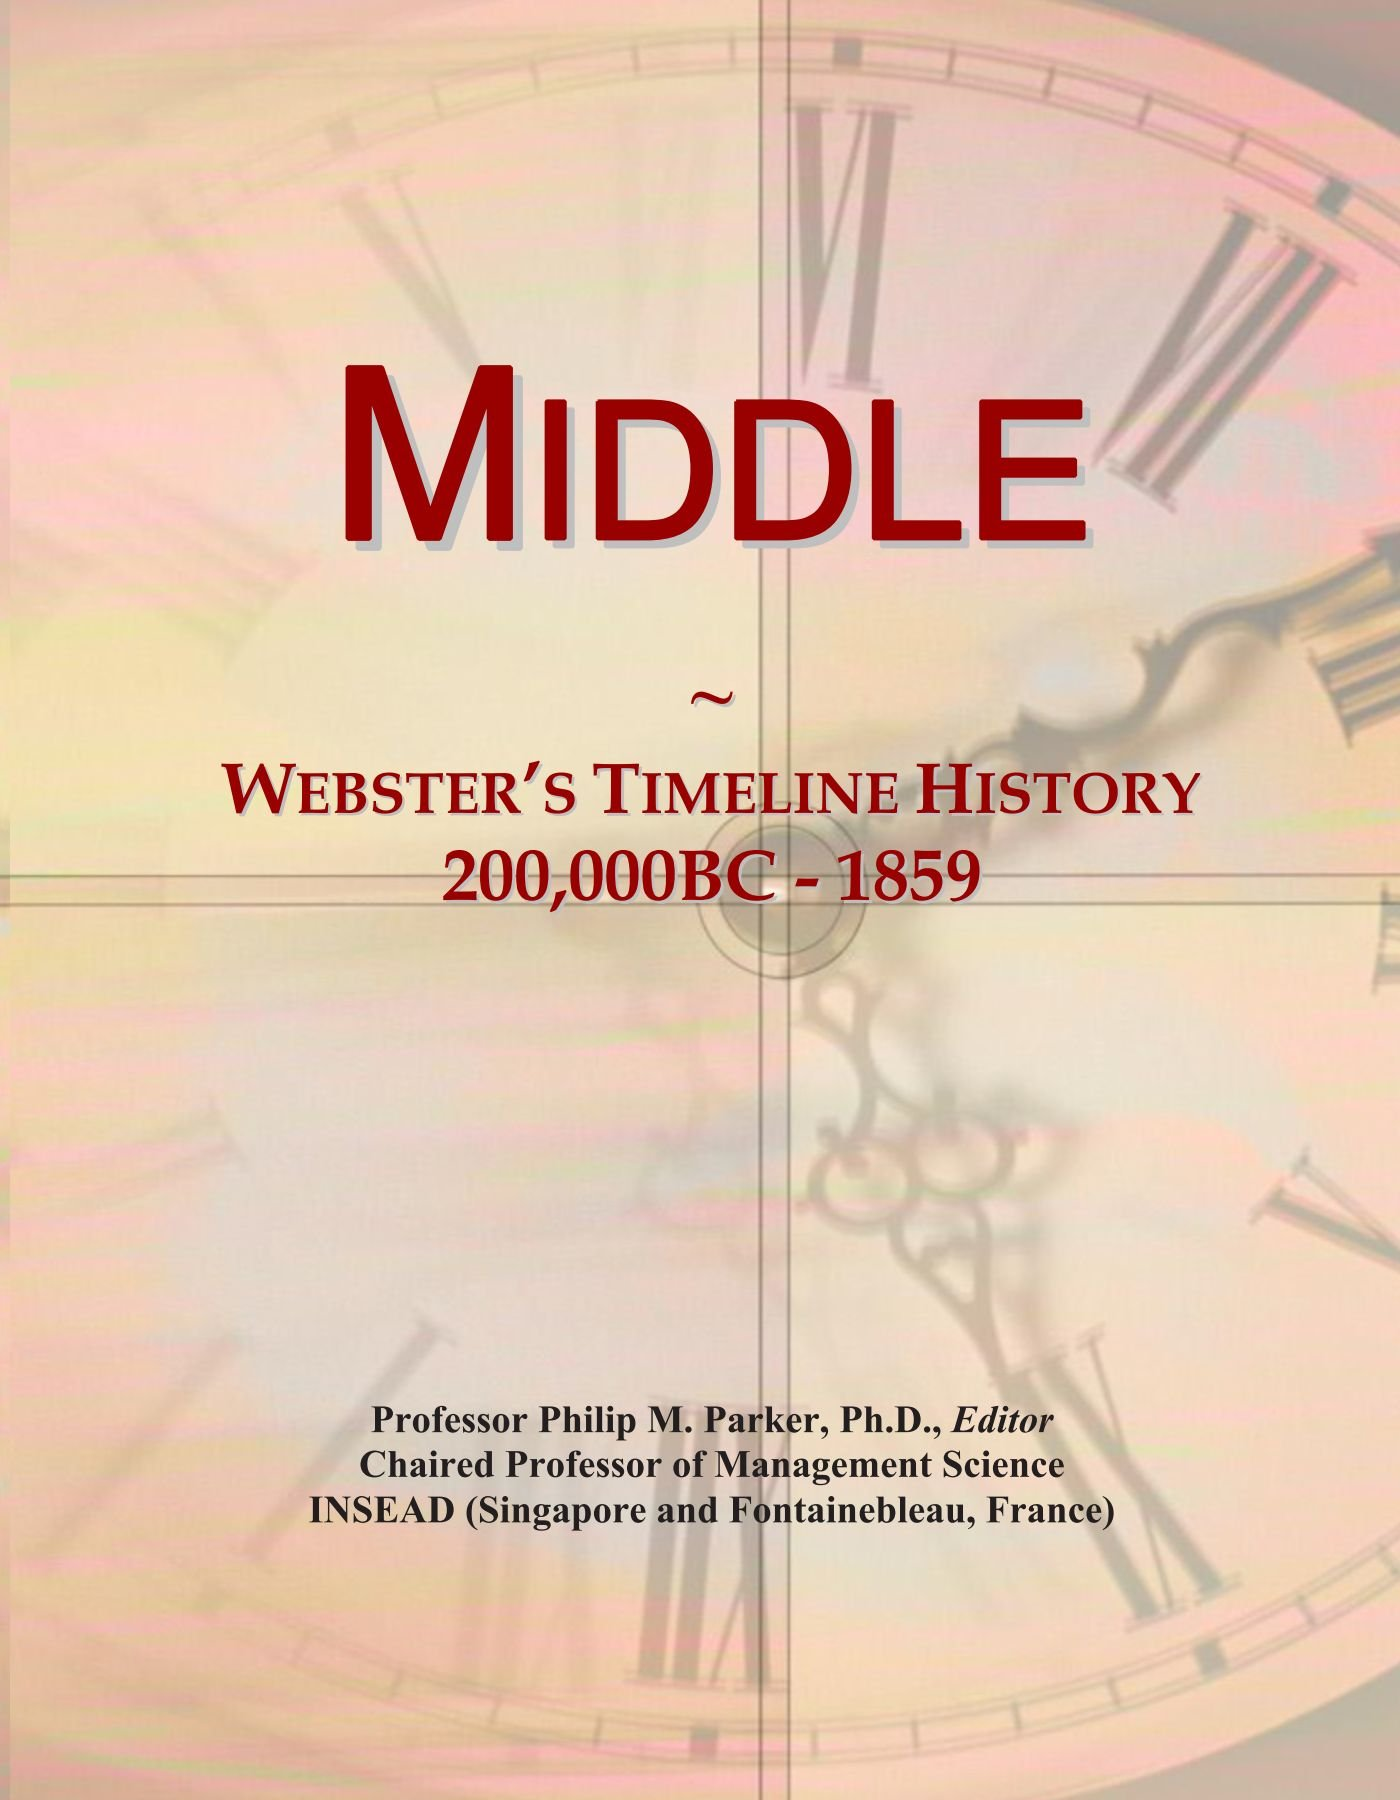 Download Middle: Webster's Timeline History, 200,000BC - 1859 PDF